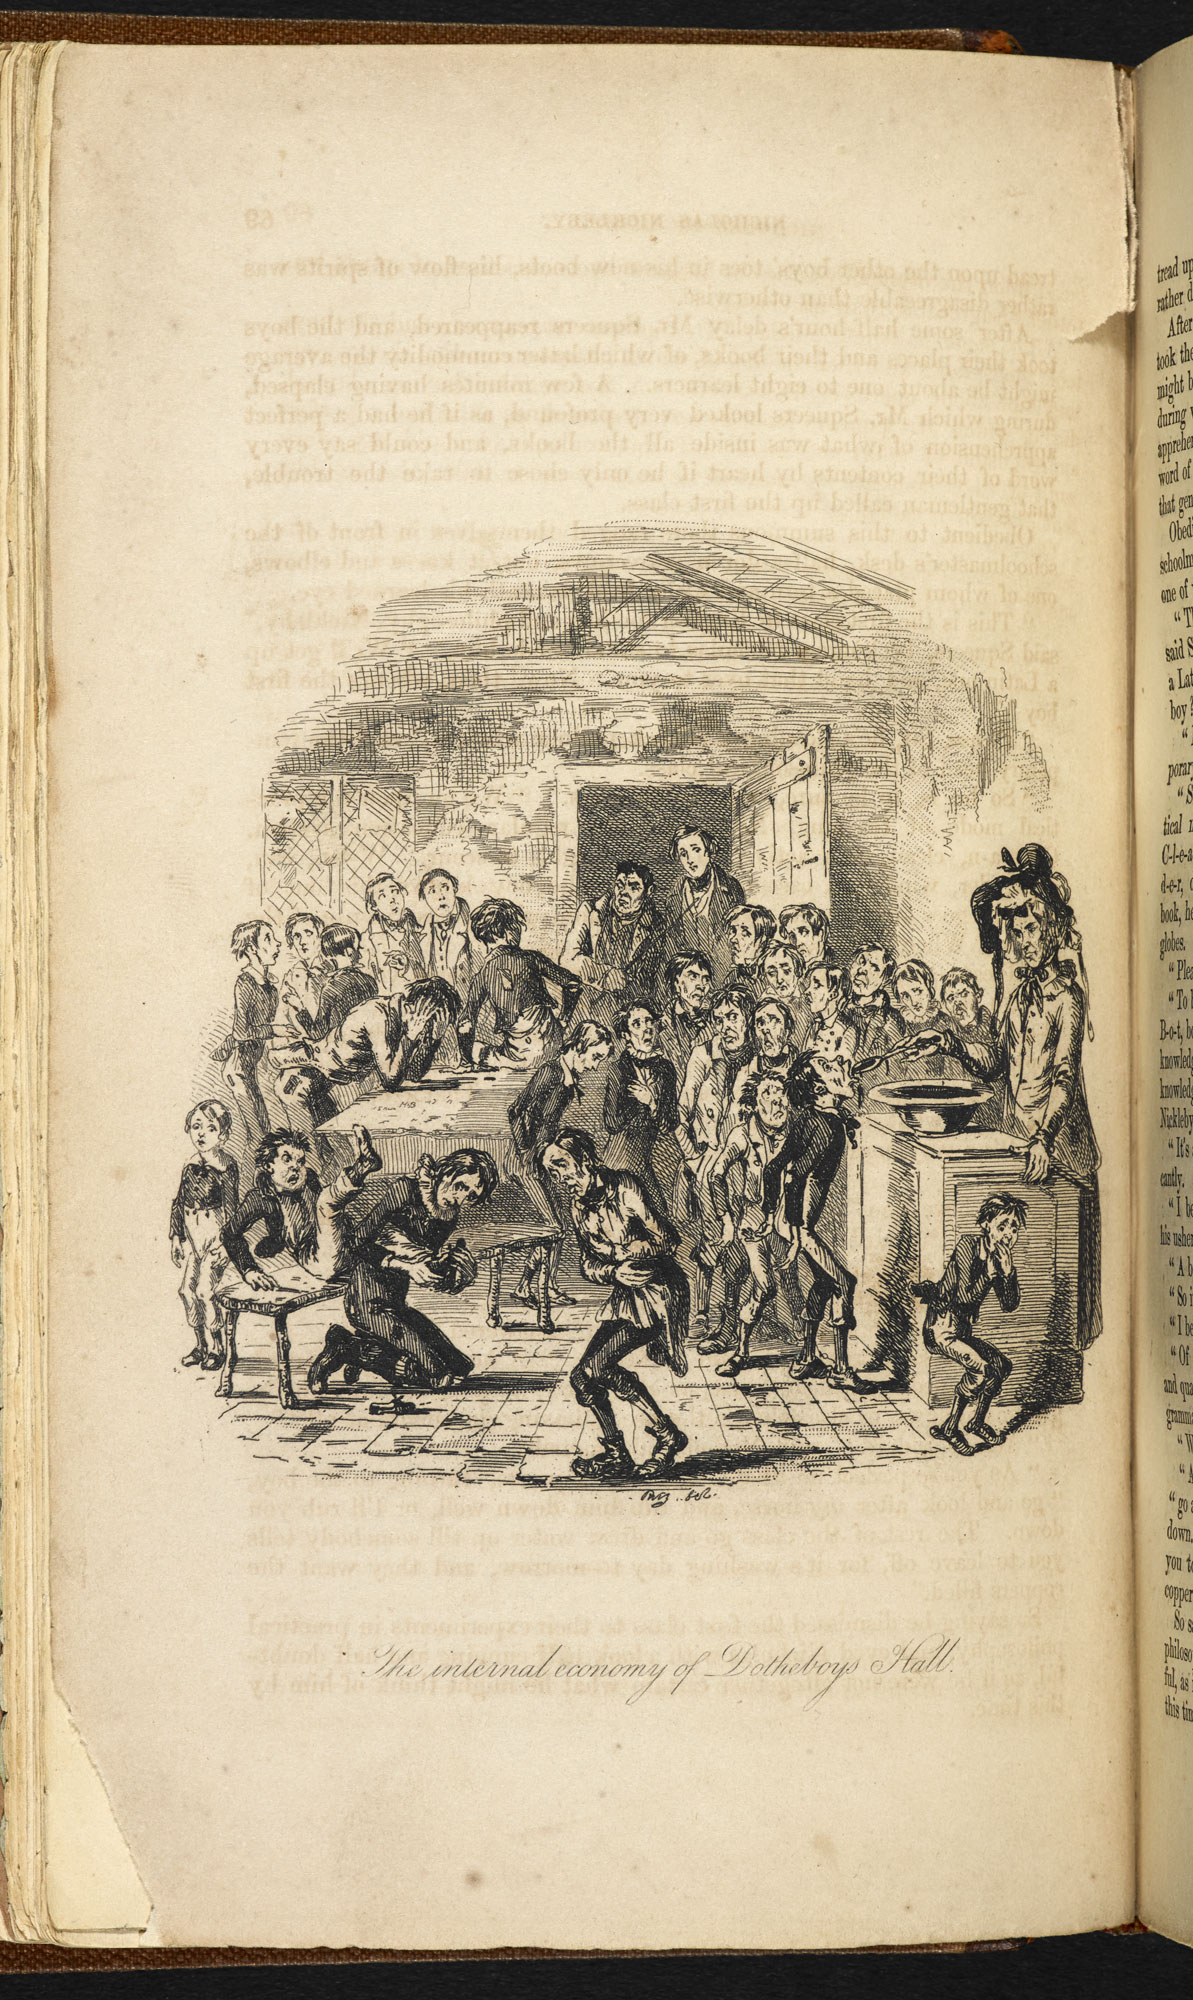 Illustrations to Nicholas Nickleby [page: facing p. 69]